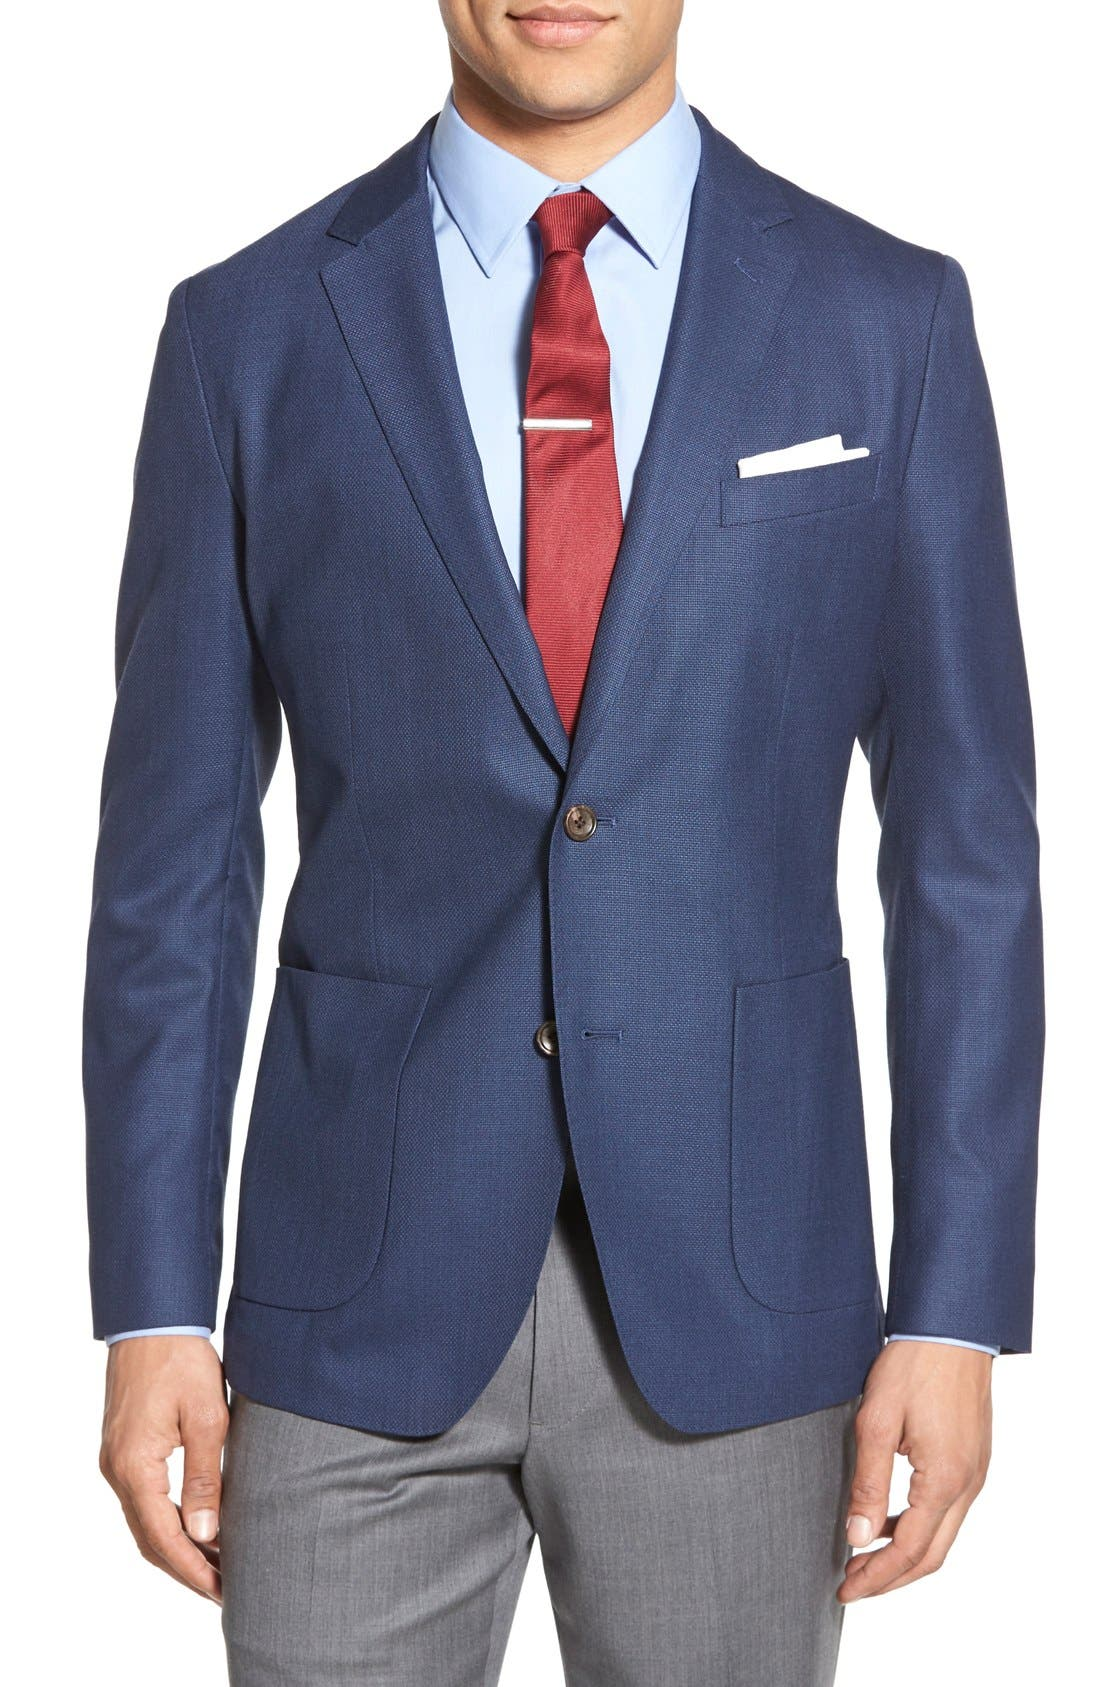 Alternate Image 1 Selected - Bonobos Knit Wool Sport Coat